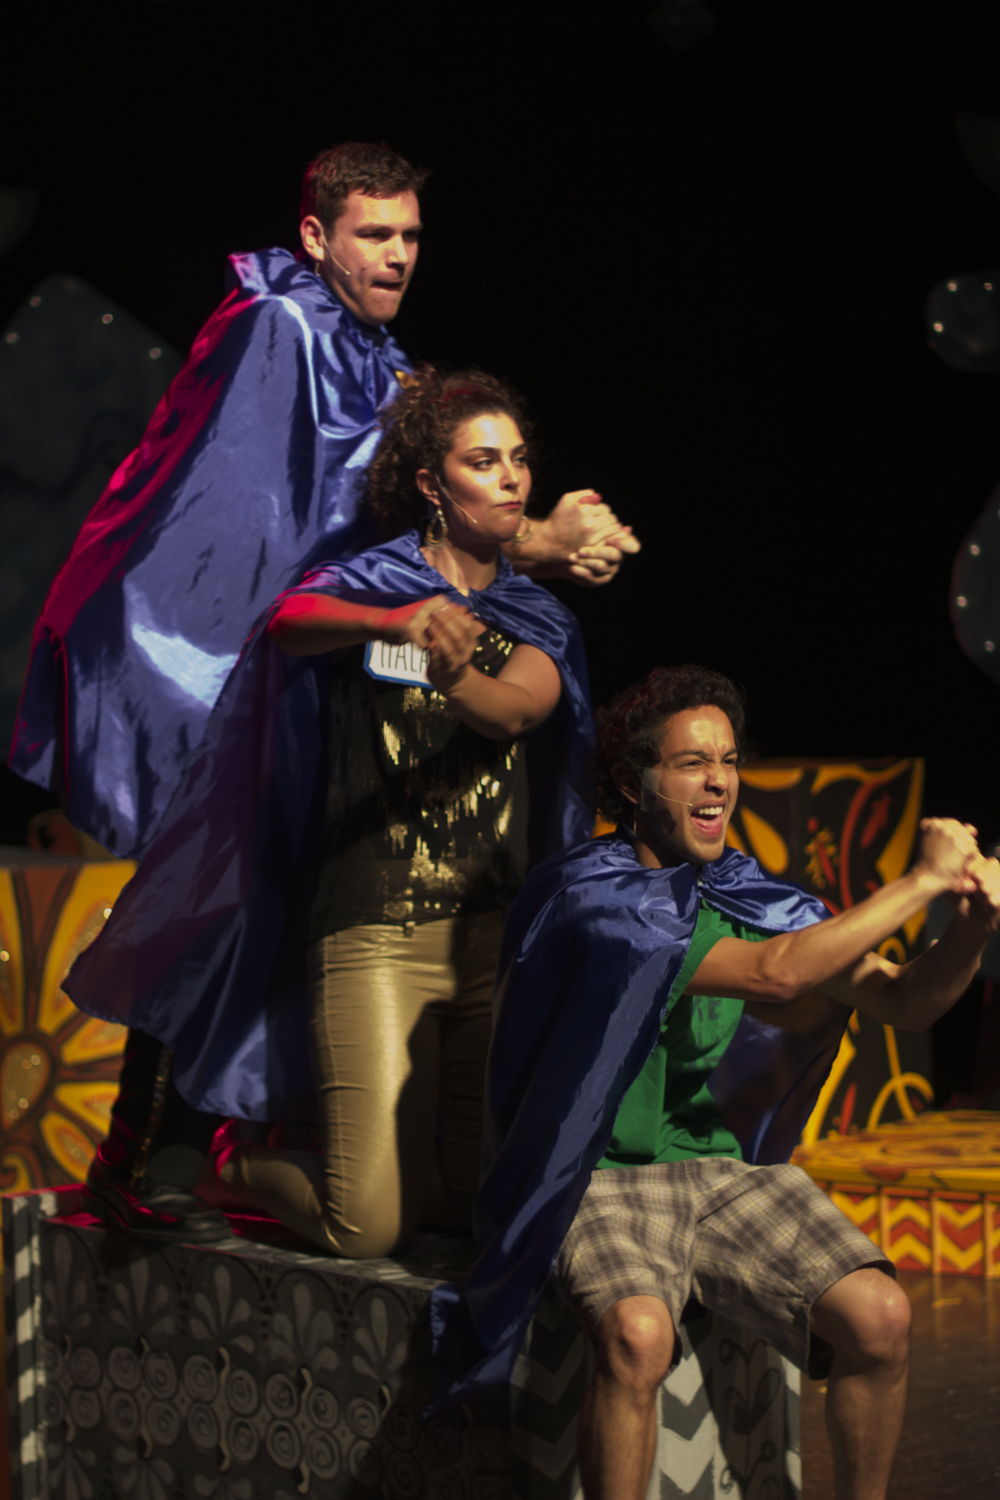 Steven Shear, Michelle Drexler, Vince Rodriguez (Bay Area Children's Theatre, 2012)  Photography by Joshua Posamentier